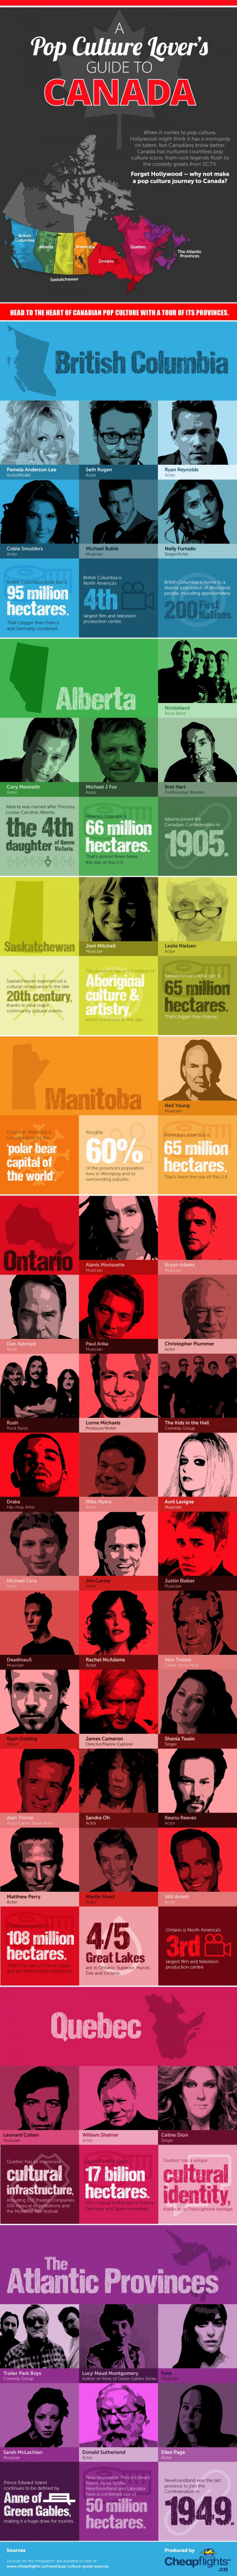 A Pop Culture Lovers Guide to Canada